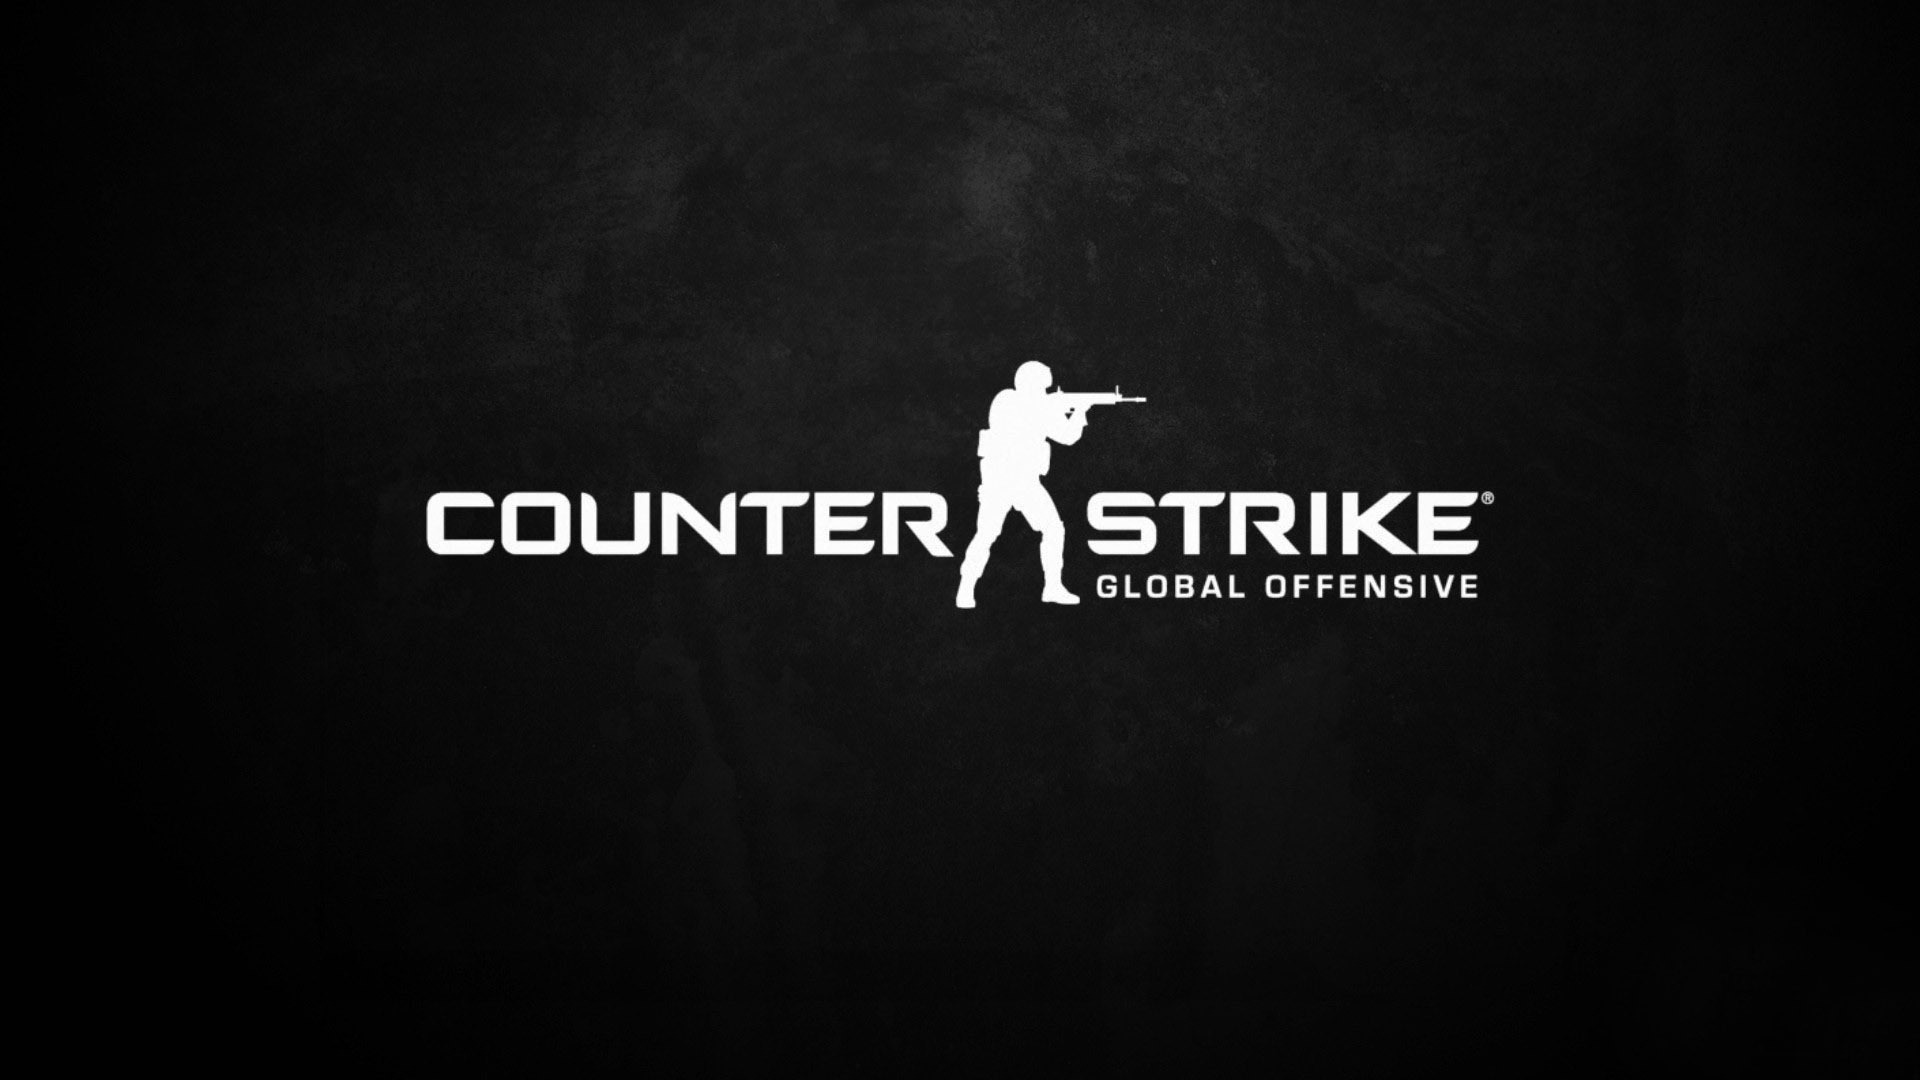 Pics Photos   Counter Strike Ipad Wallpaper Hd 1920x1080